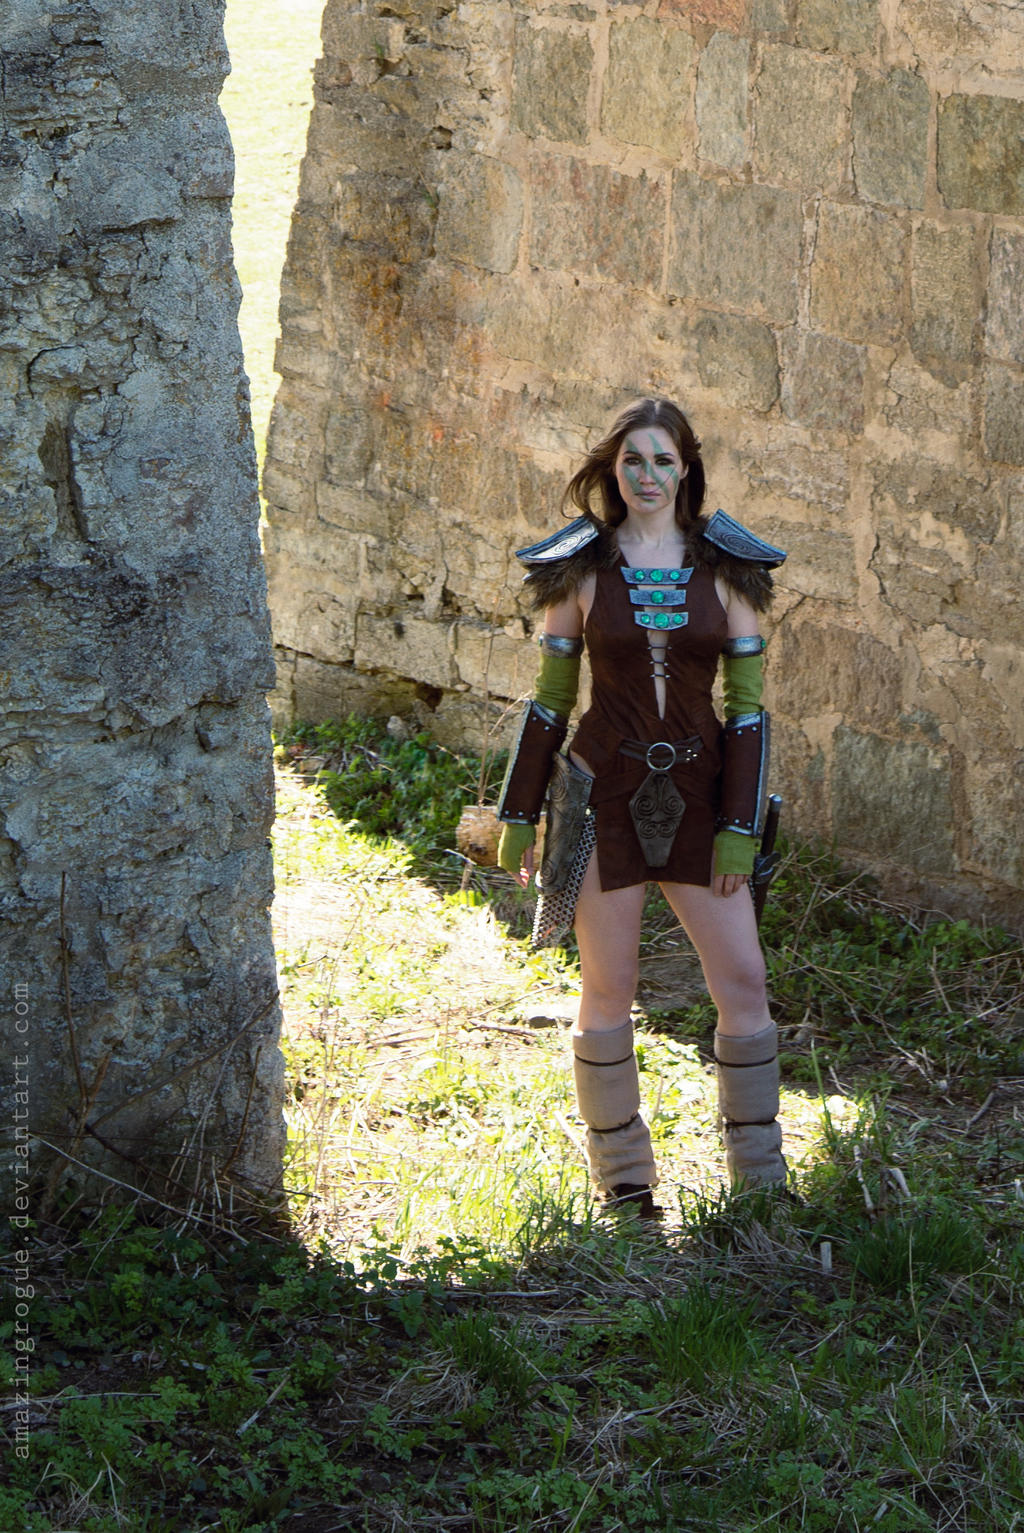 skyrim aela the huntress by amazingrogue on deviantart